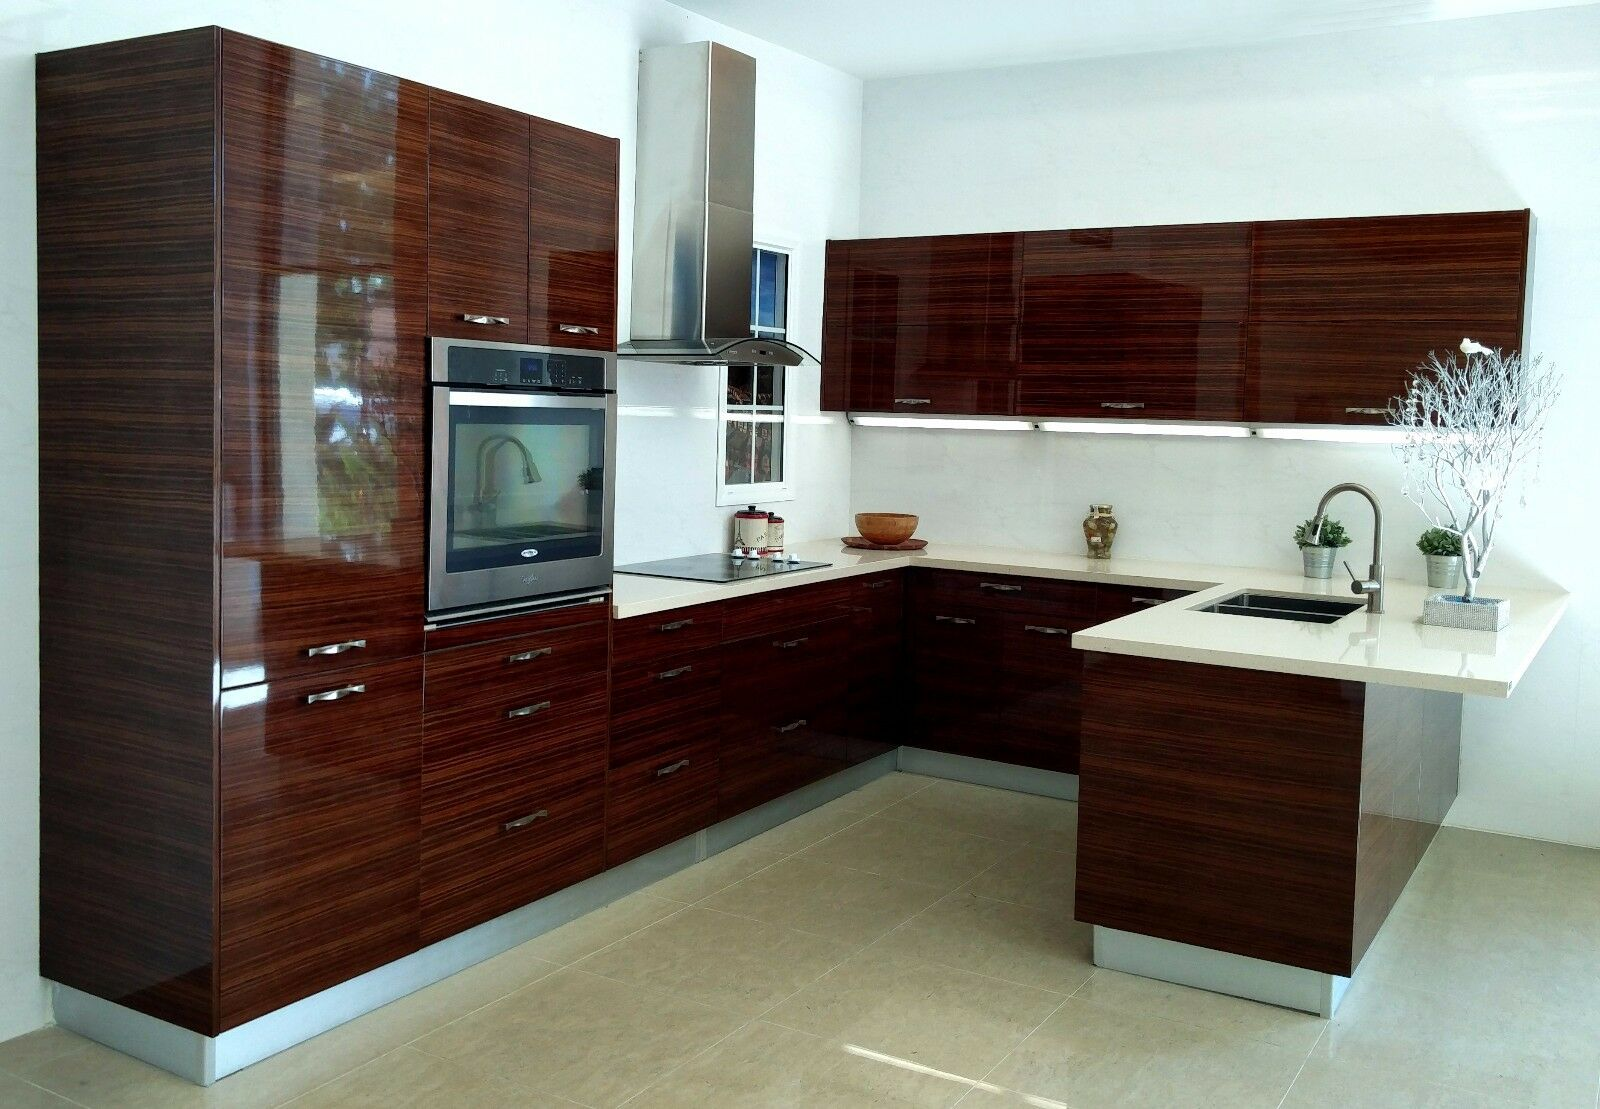 High Gloss Lacquer/Acrylic/Laminate Doors For Kitchen Cabinets ...